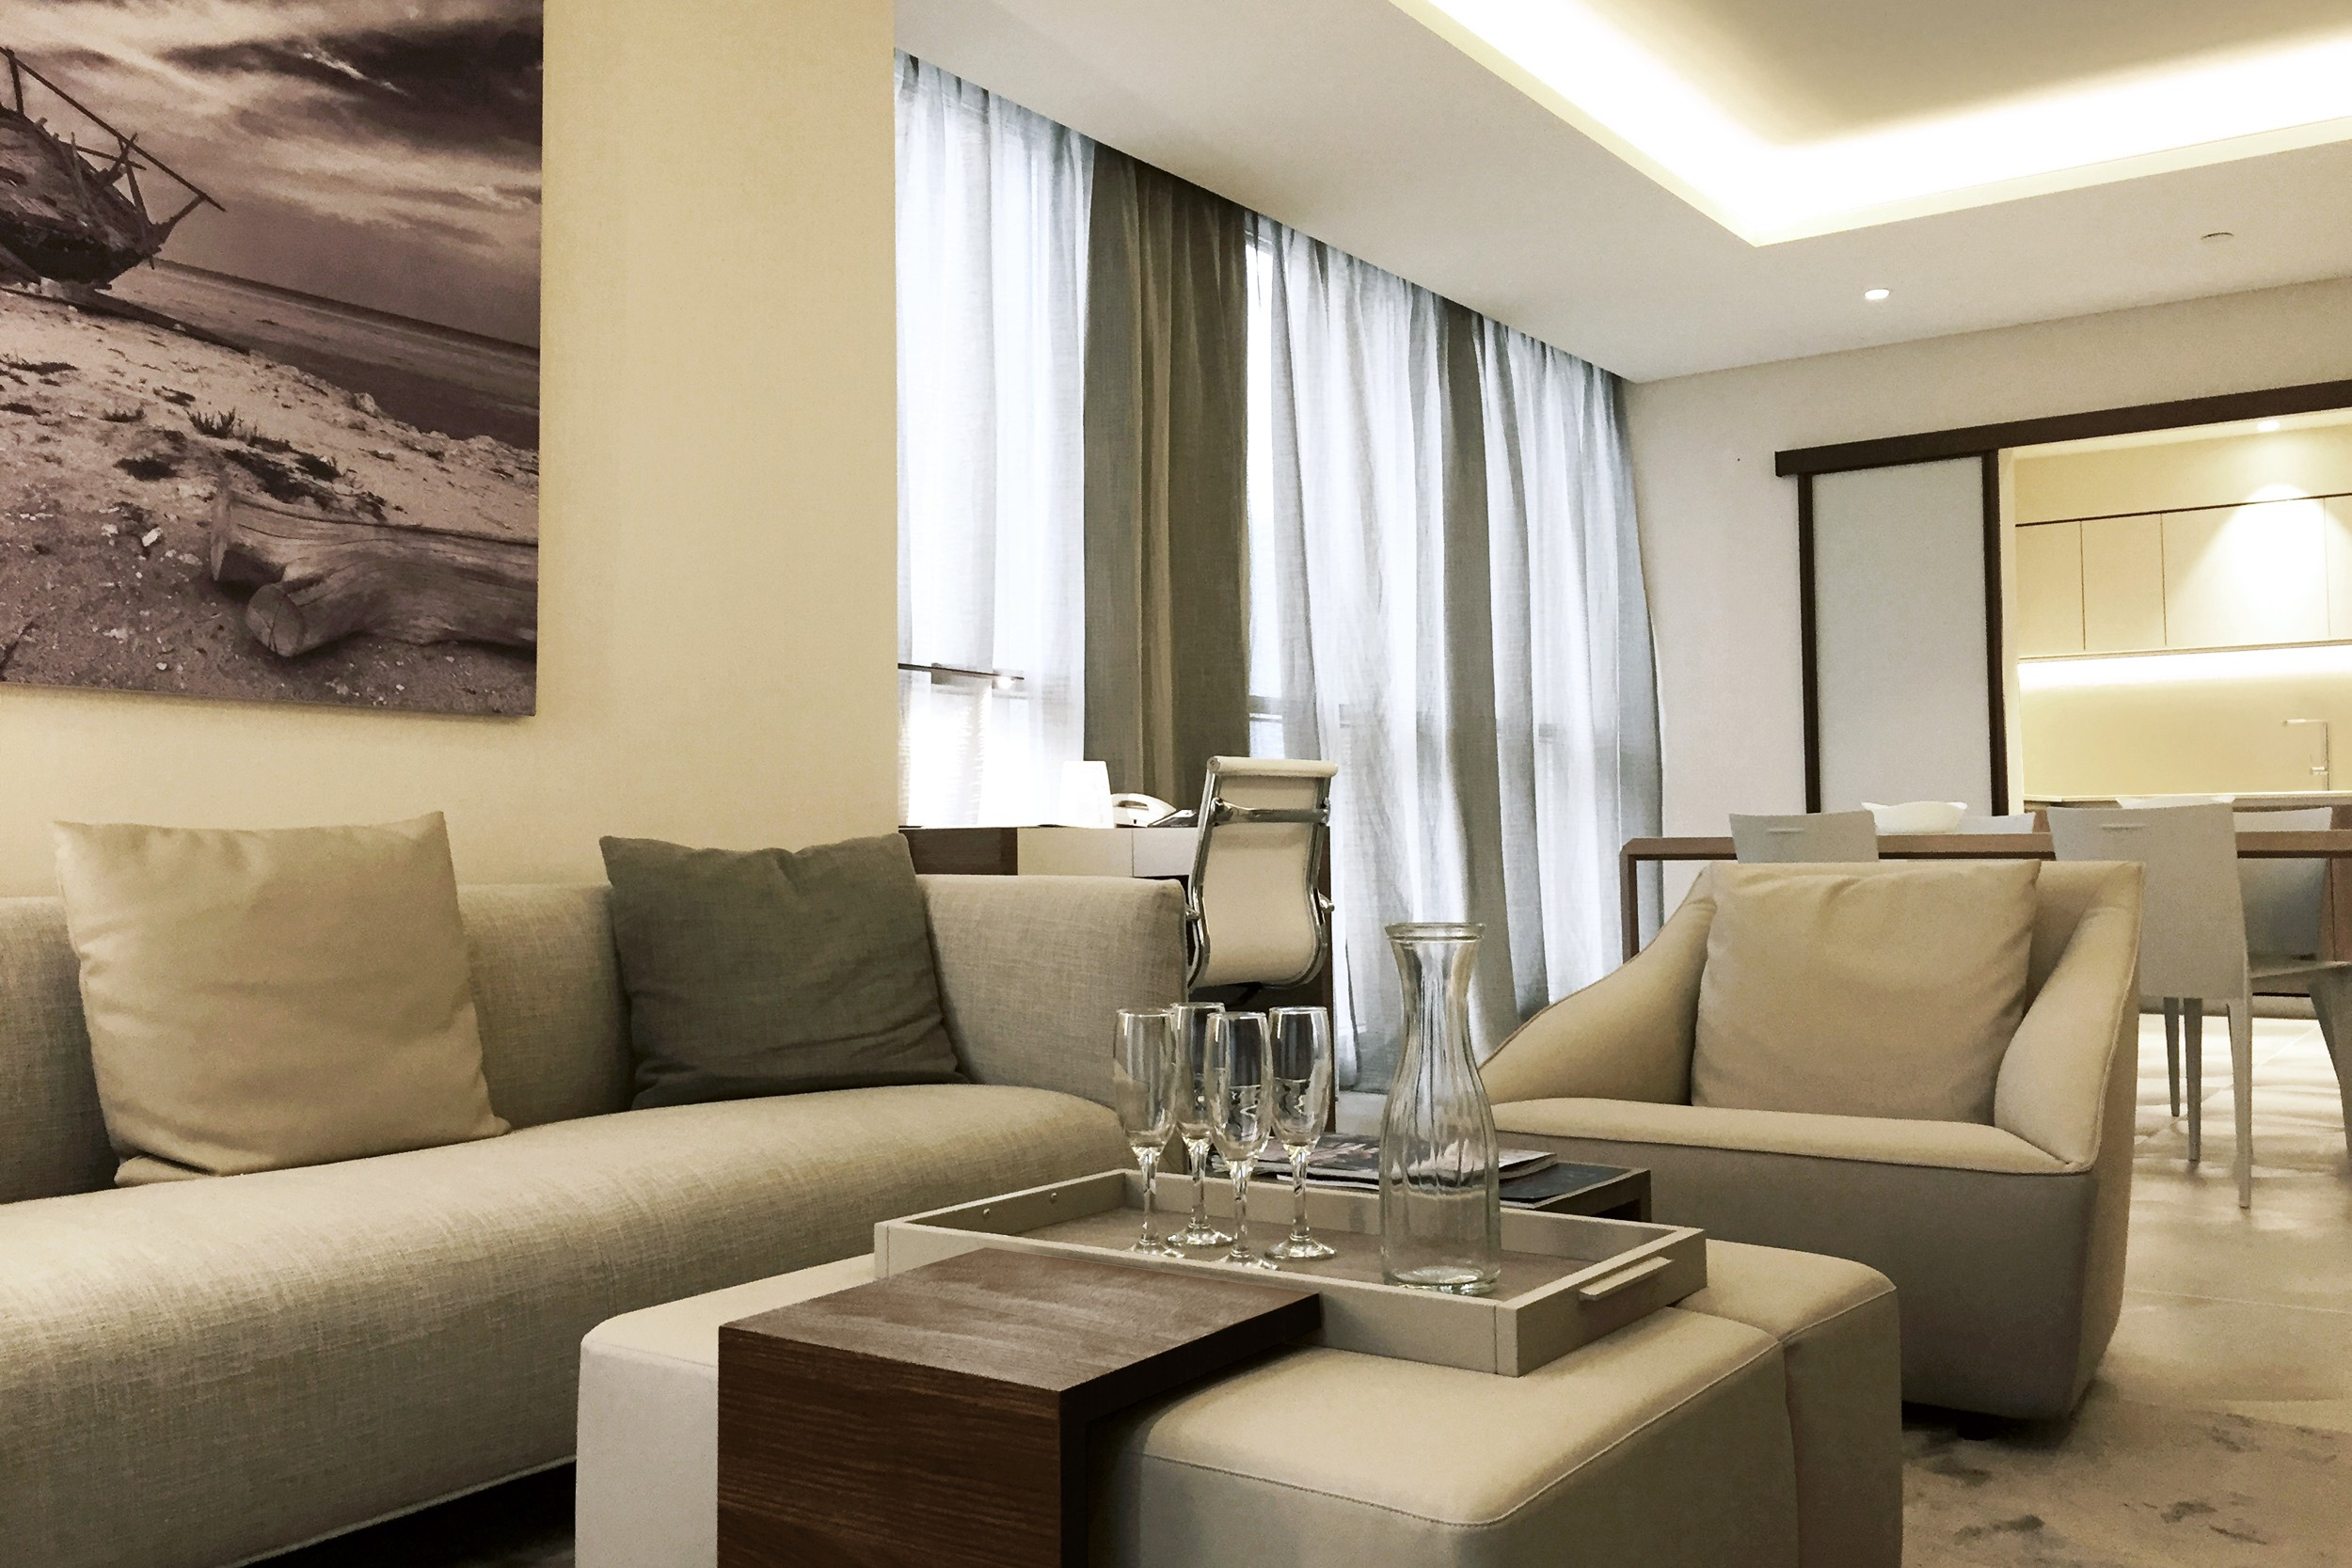 fascinating-best-interior-design-site-with-walls-painted-of-cream-plus-brown-curtains-on-glass-windows-also-grey-fabric-sofa-and-cream-fabric-coffee-table-with-grey-wooden-top-along-cream-color-vinyl